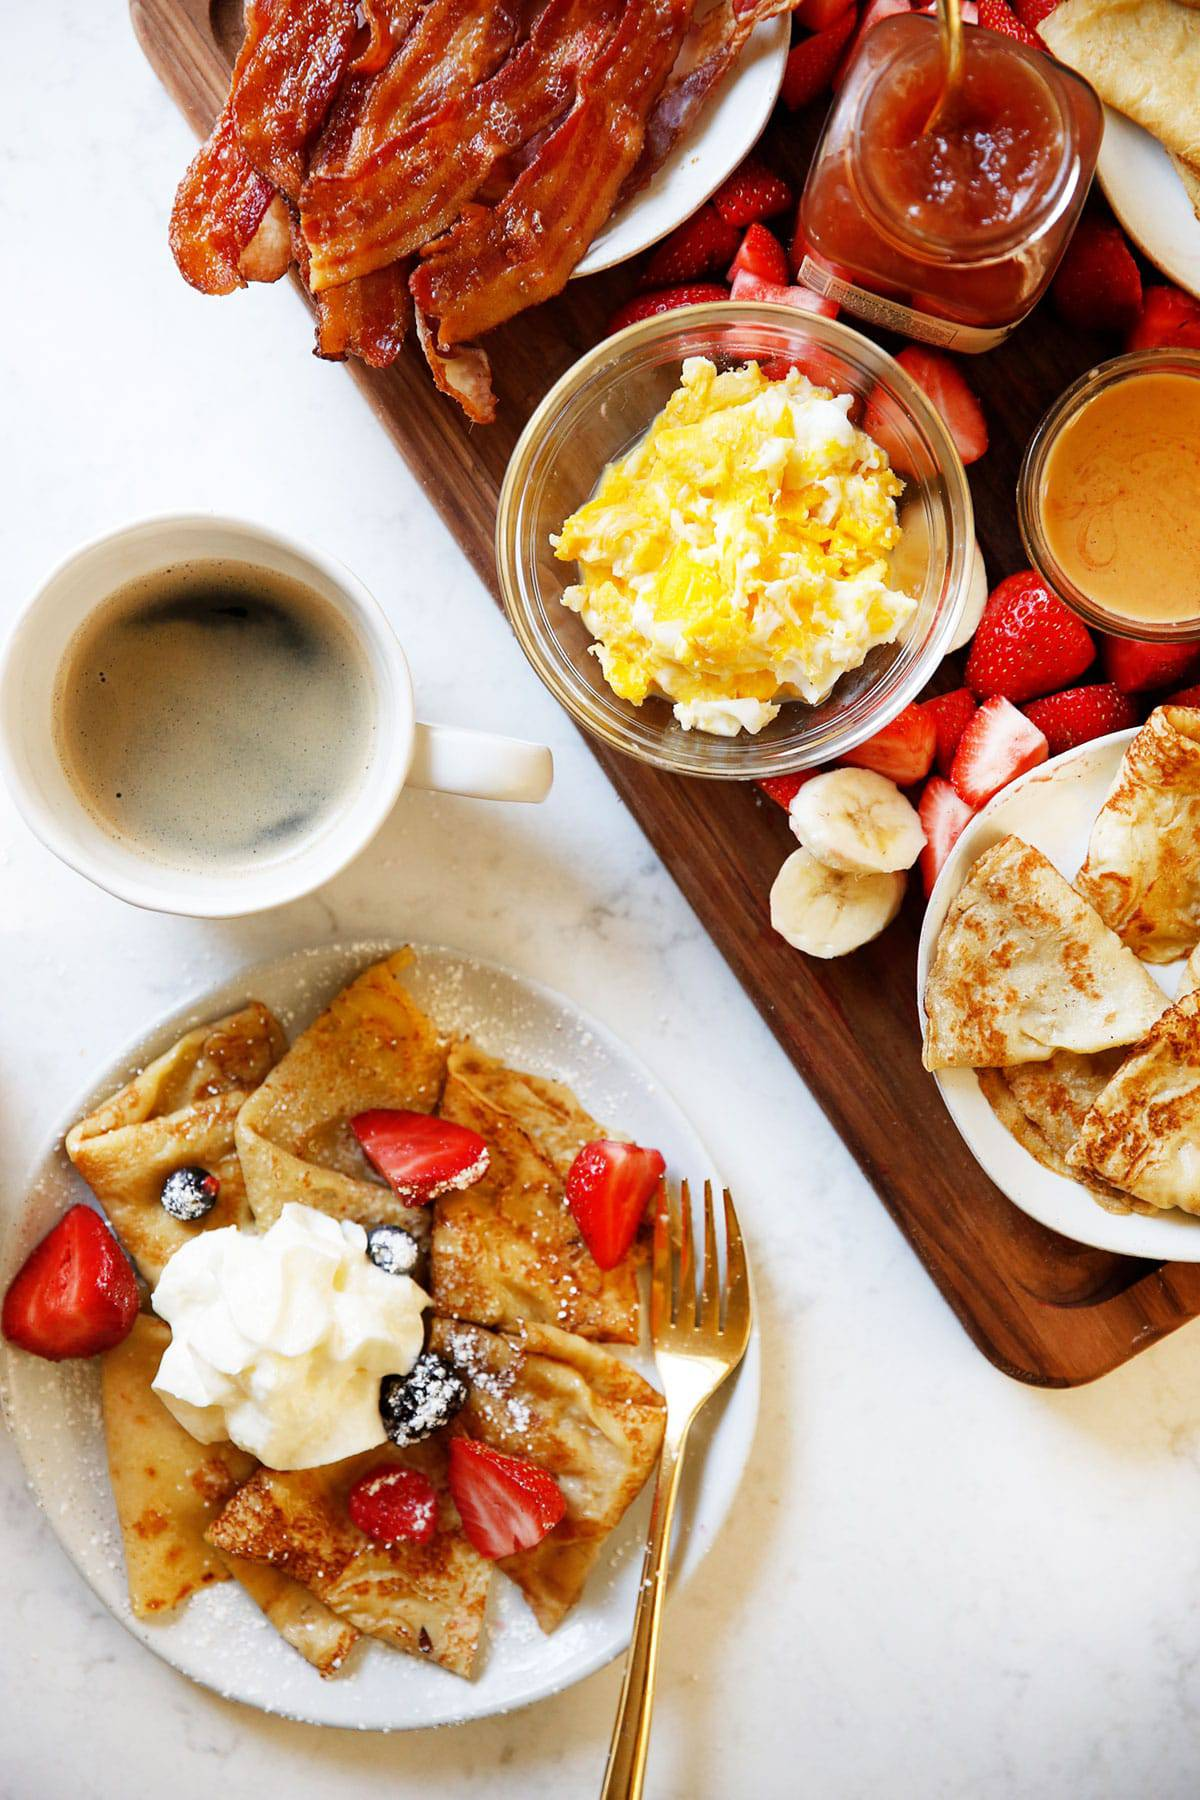 A breakfast spread with gluten-free crepes and coffee.